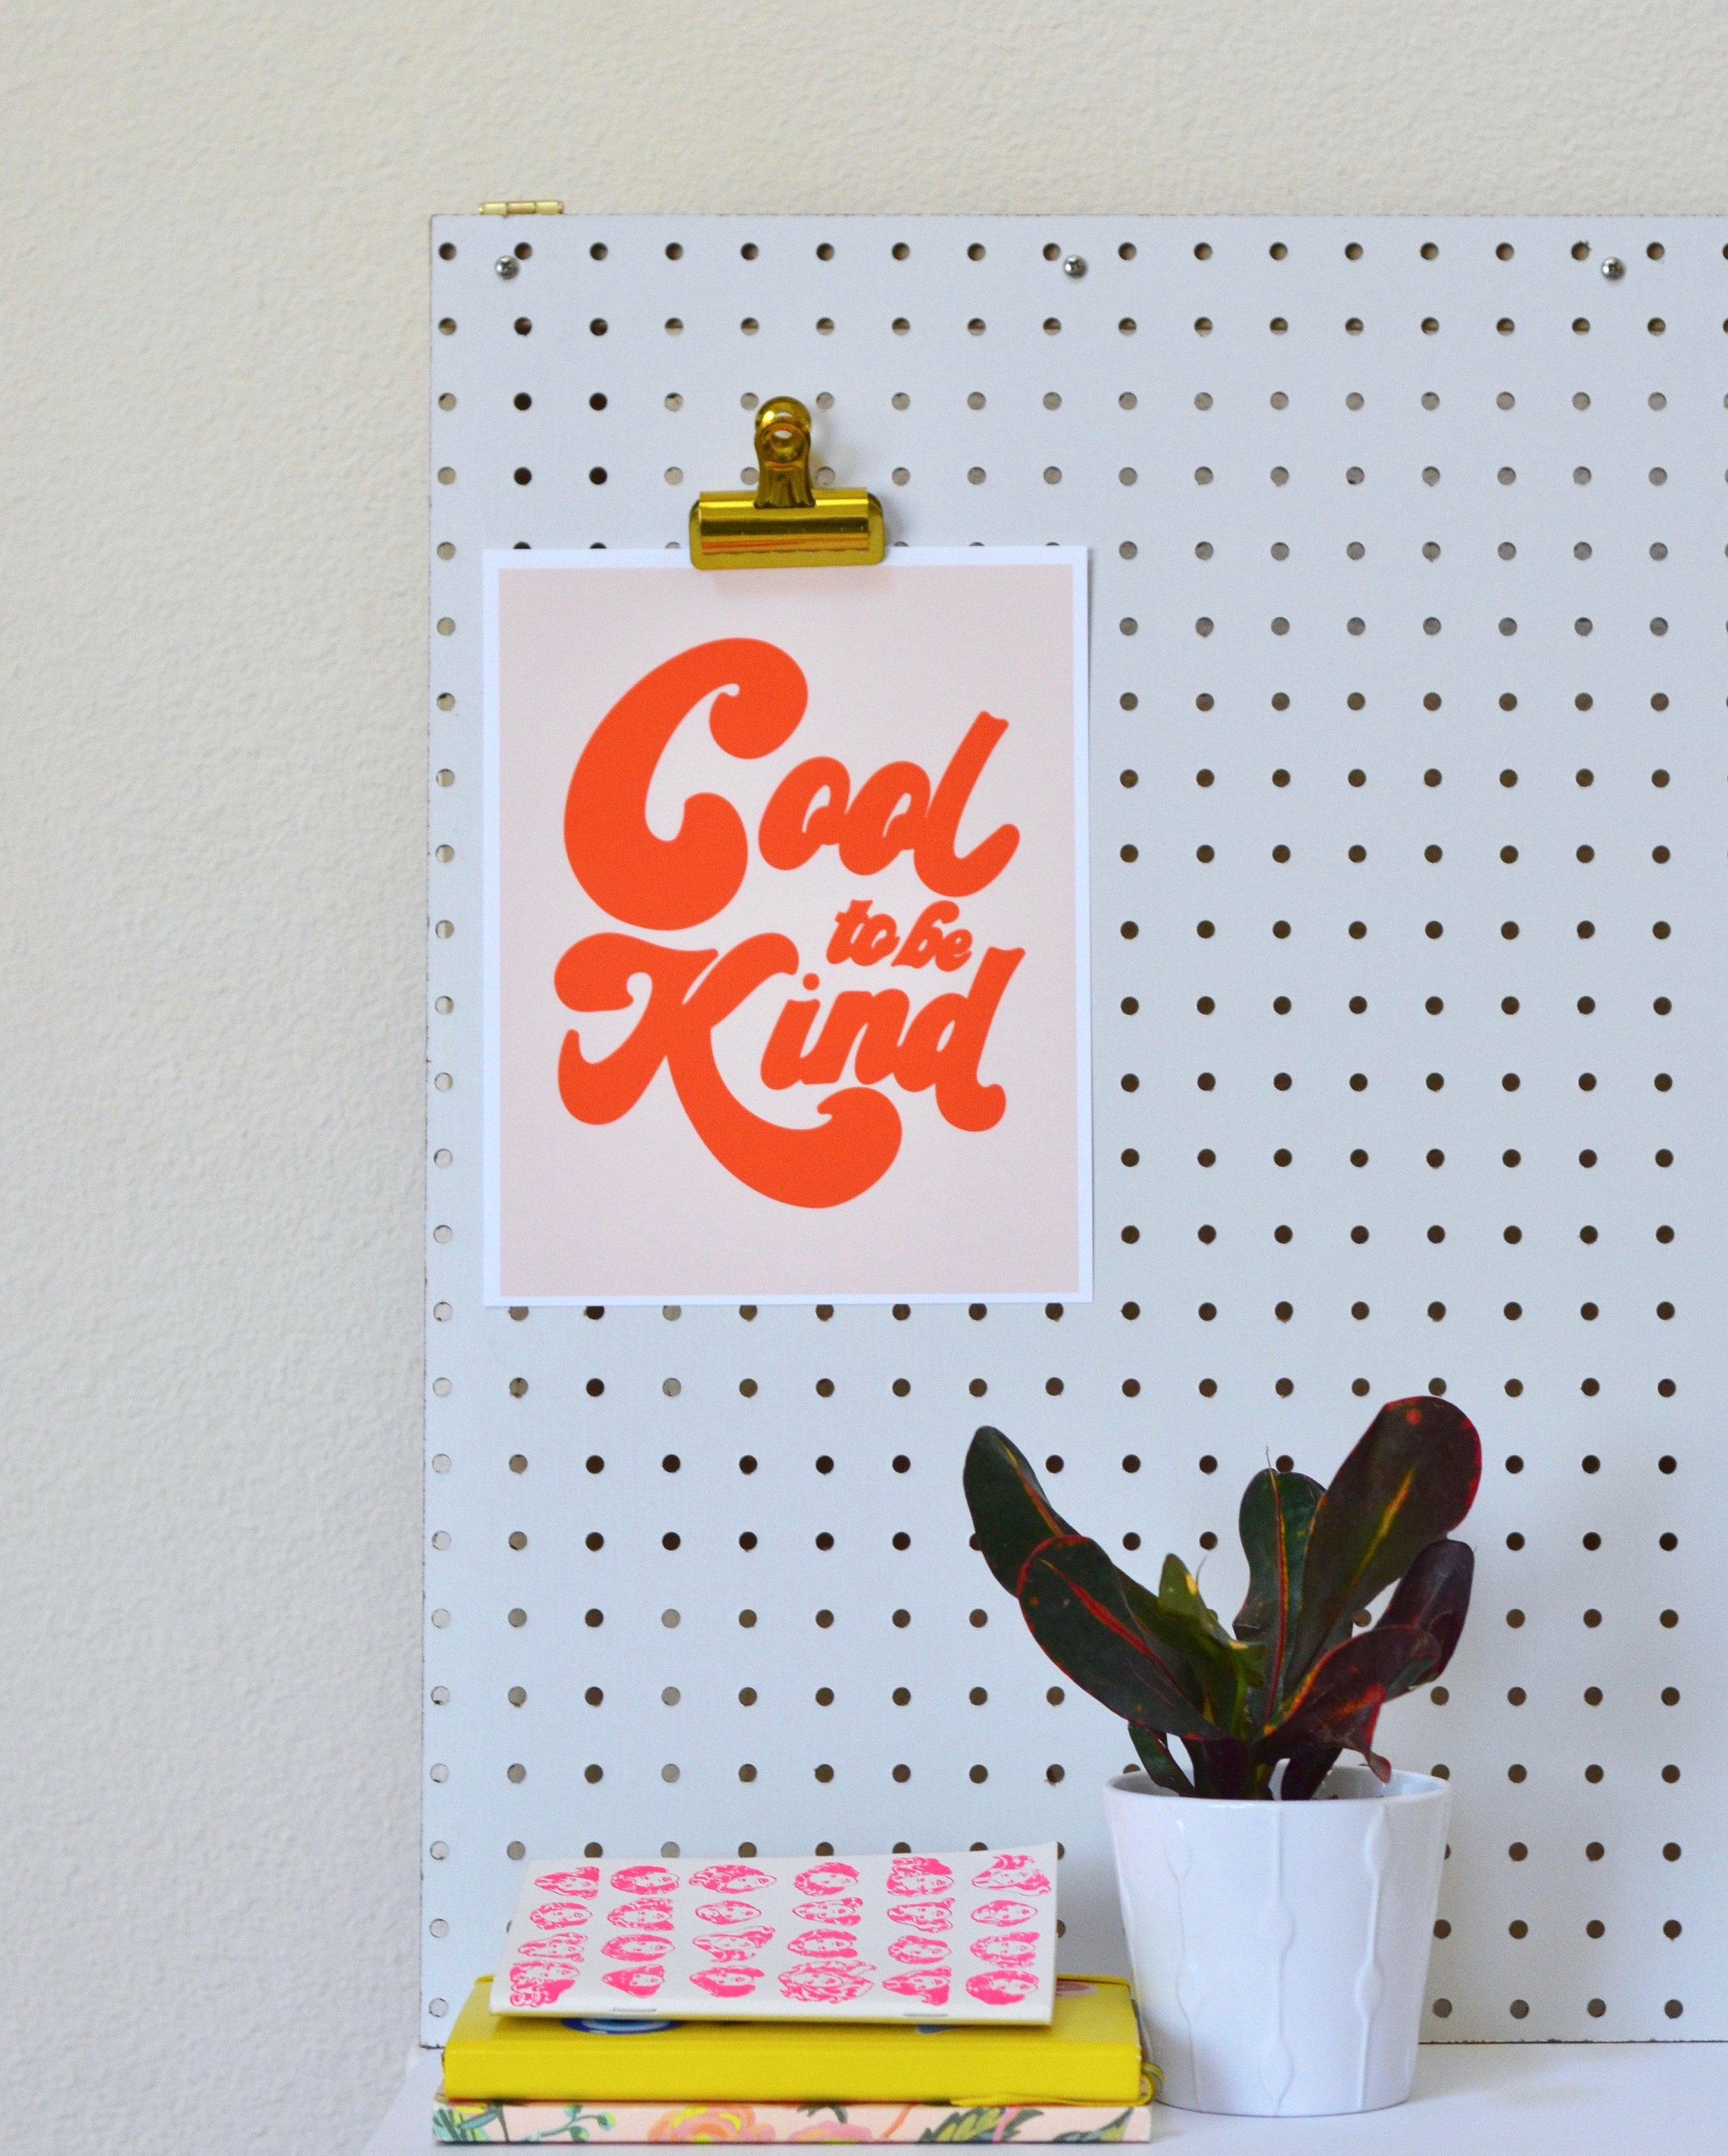 Cool To Be Kind, Cool To Be Kind Art, Be Kind, Be Kind Print, Be Kind Sign, Be Kind Poster